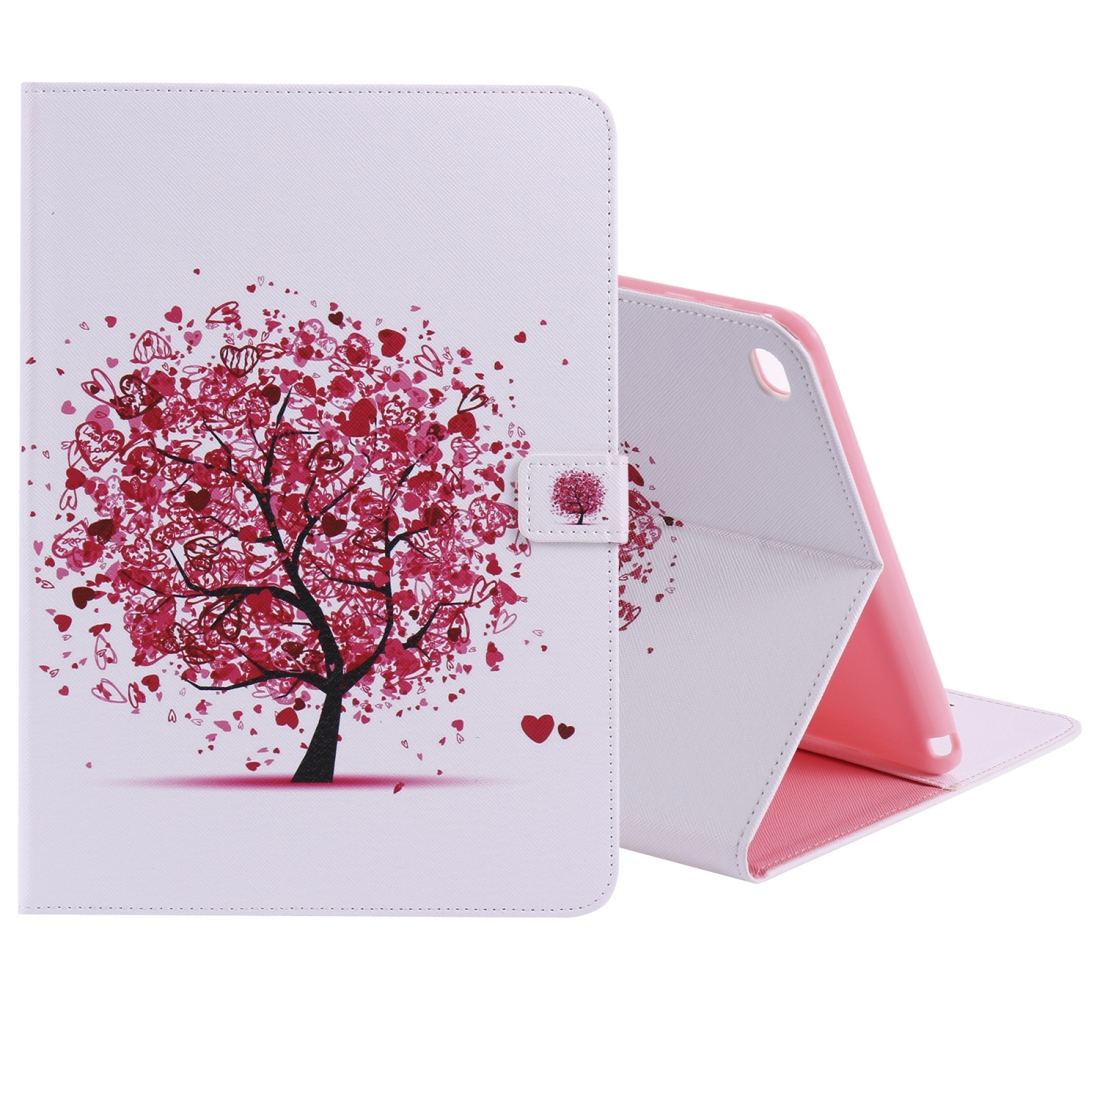 iPad 5th Generation Case Fits iPad 5 & 6, Leather With Slim Profile, Auto Sleep (Artistic Tree)